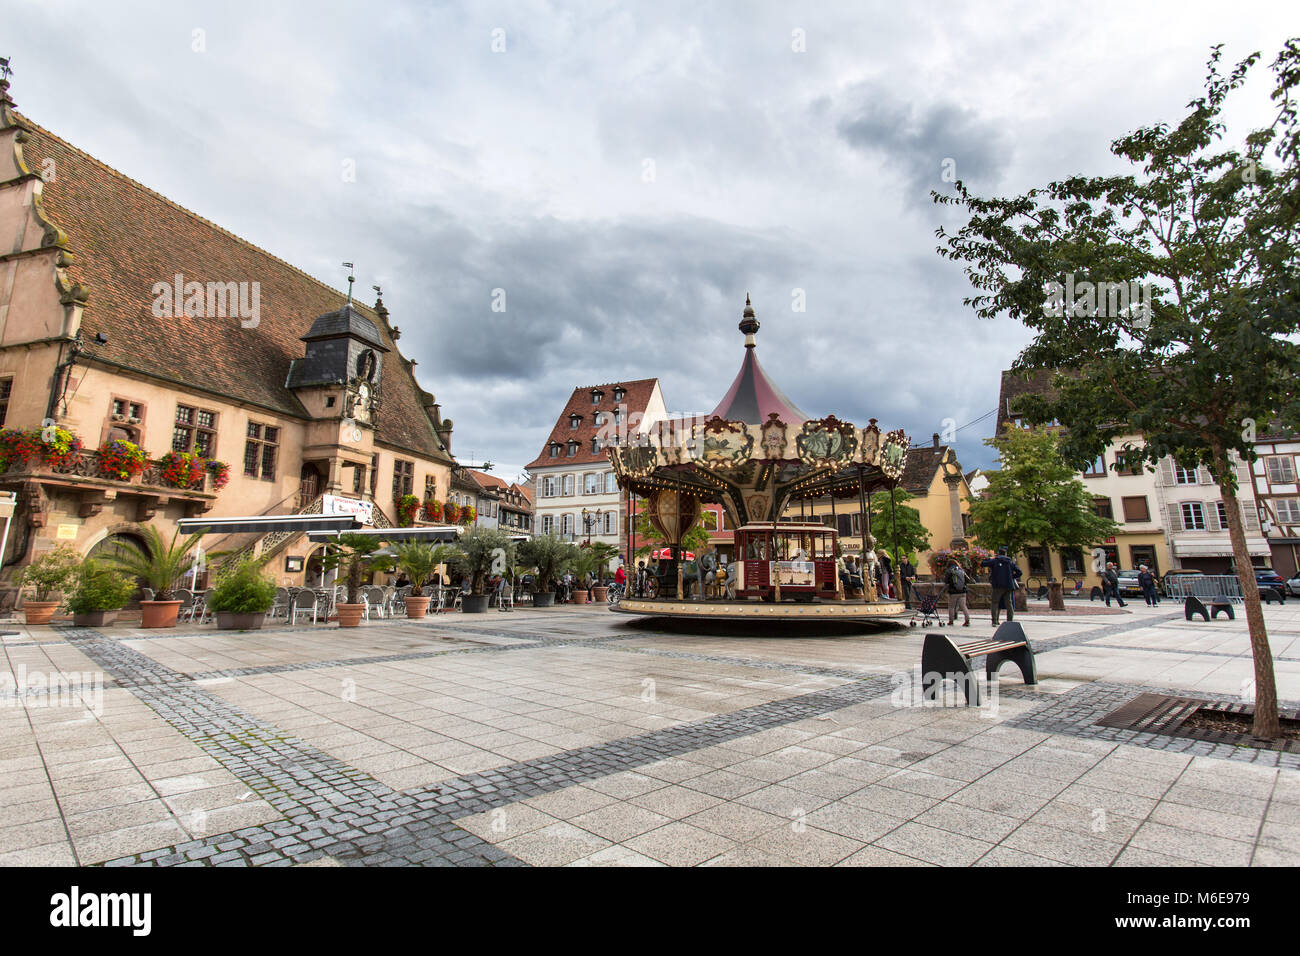 City of Molsheim, France. Picturesque view of Molsheim town centre and square, with the 16th century Renaissance - Stock Image